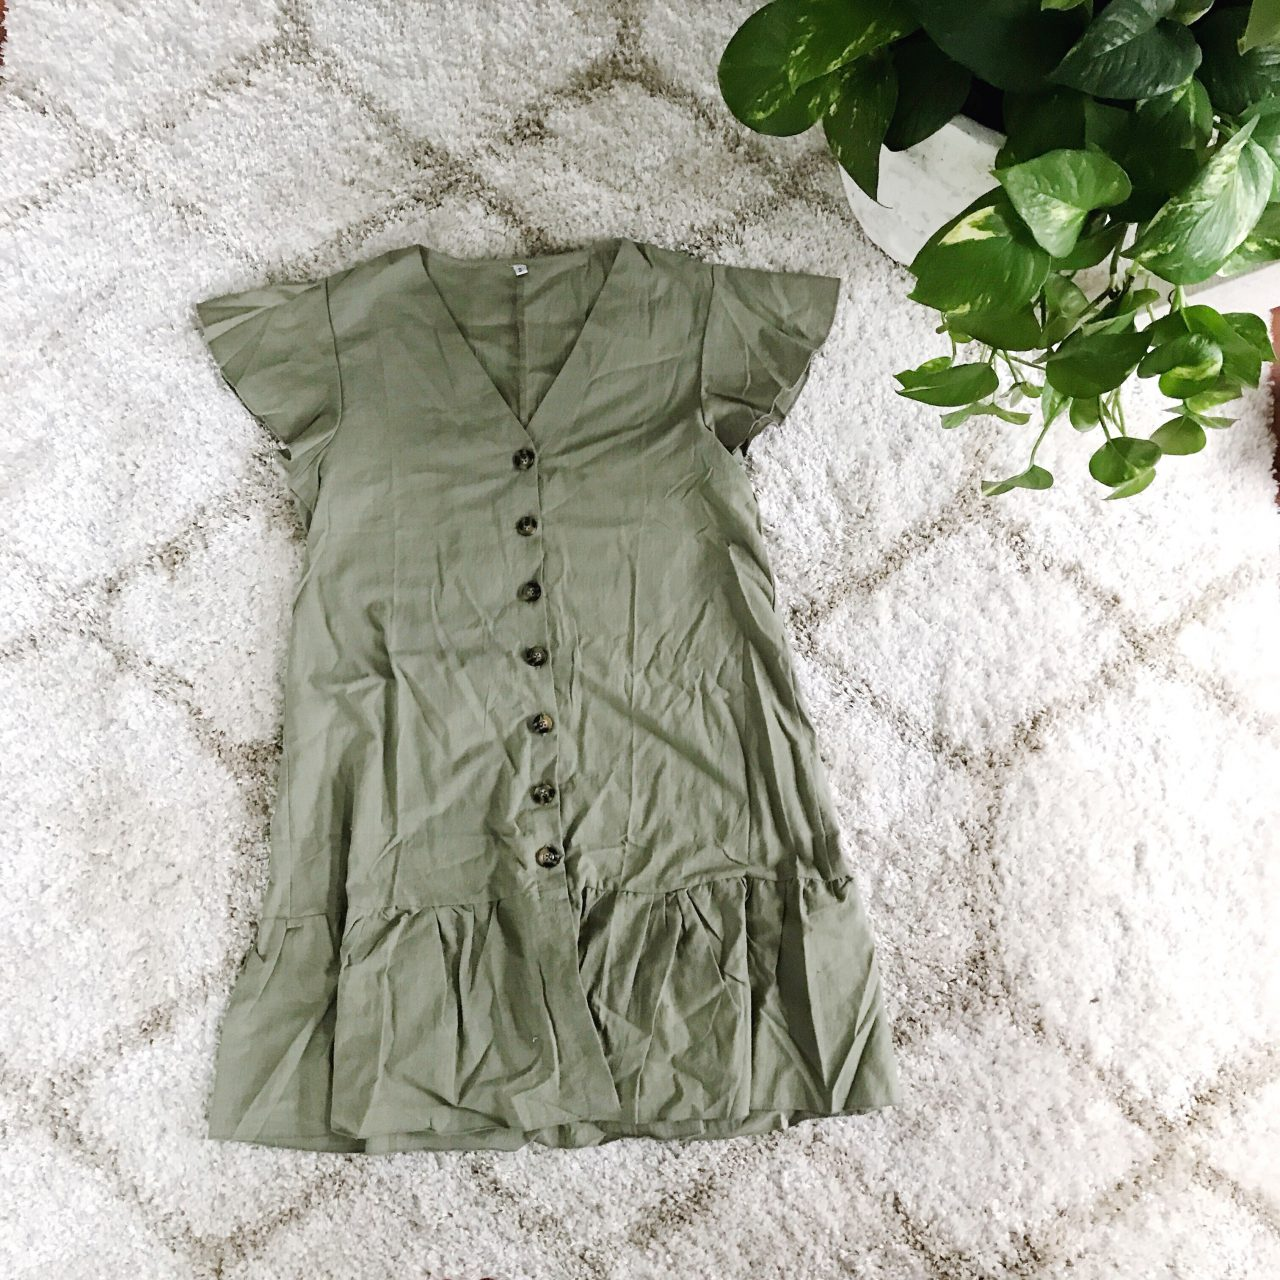 Amazon Ruffle Dress Summer 2018 Review